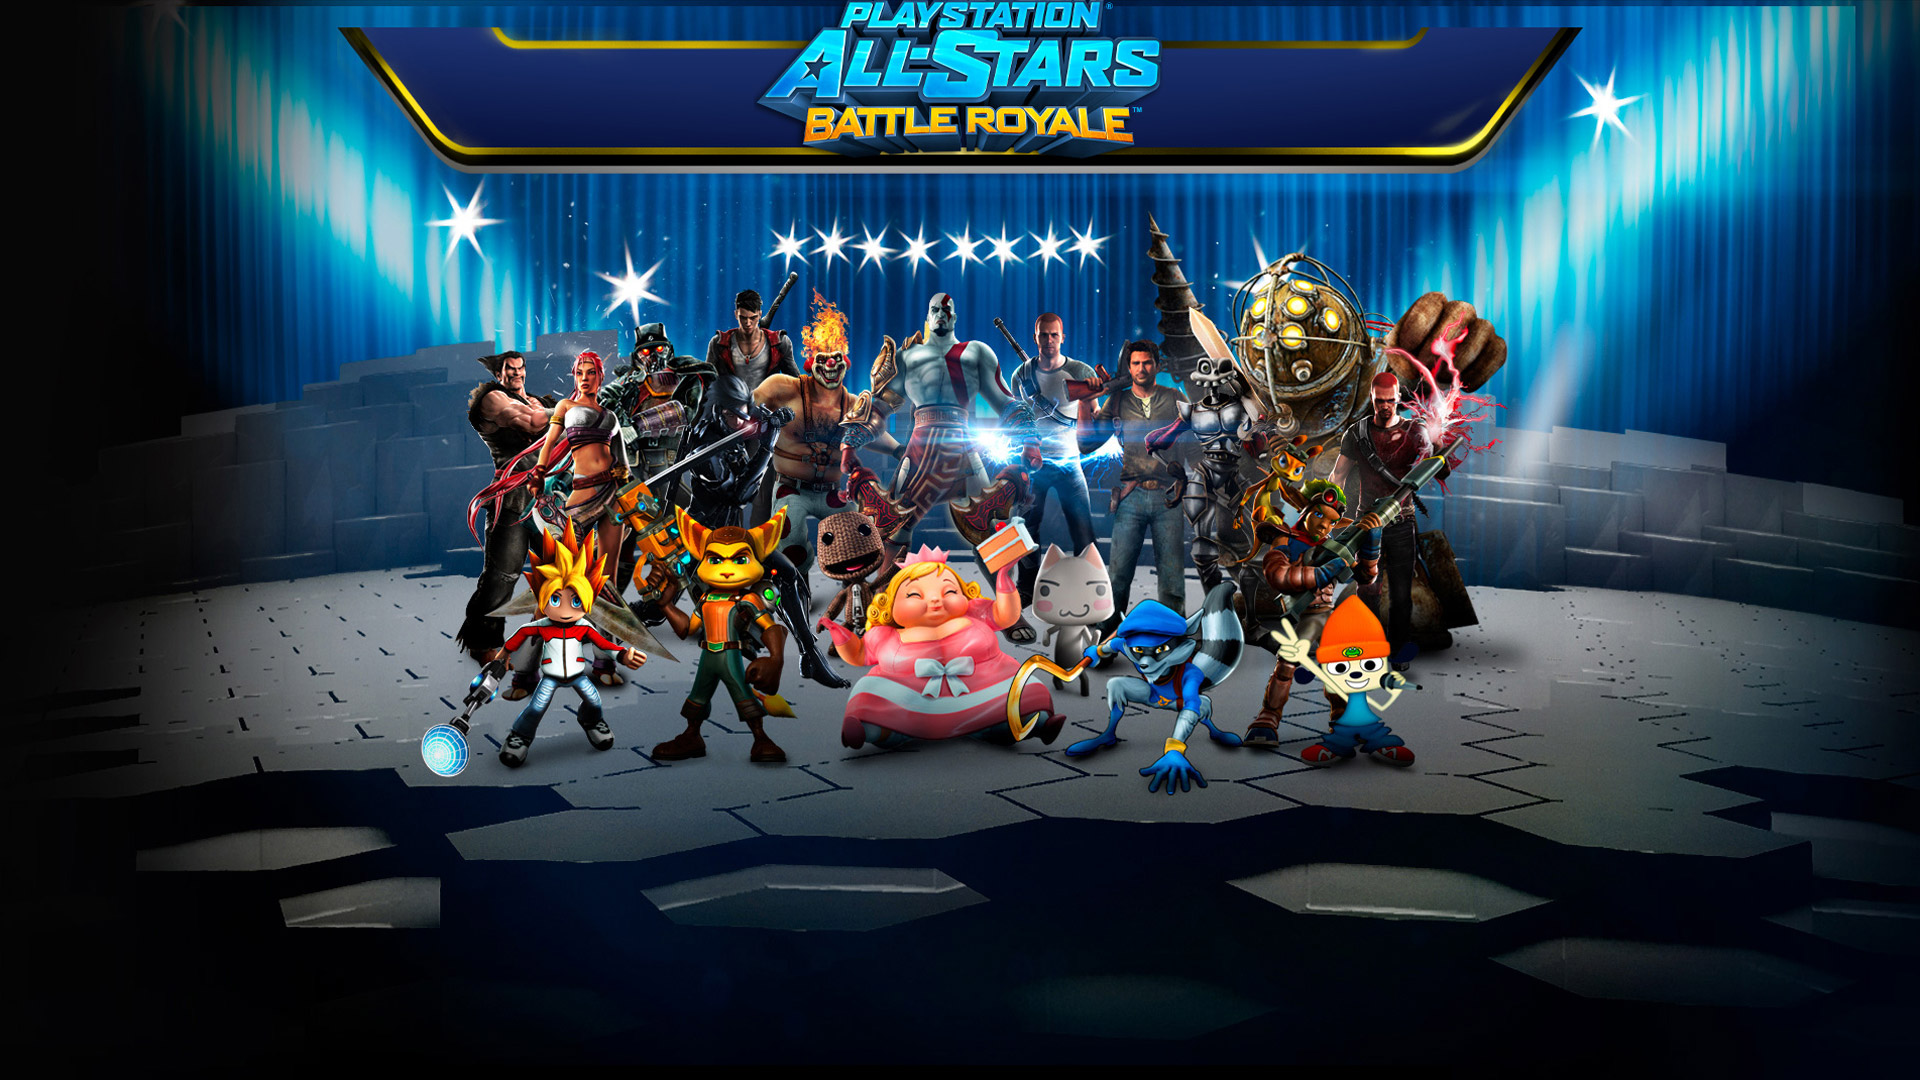 PlayStation All Stars Battle Royale Wallpaper in 1920x1080 1920x1080